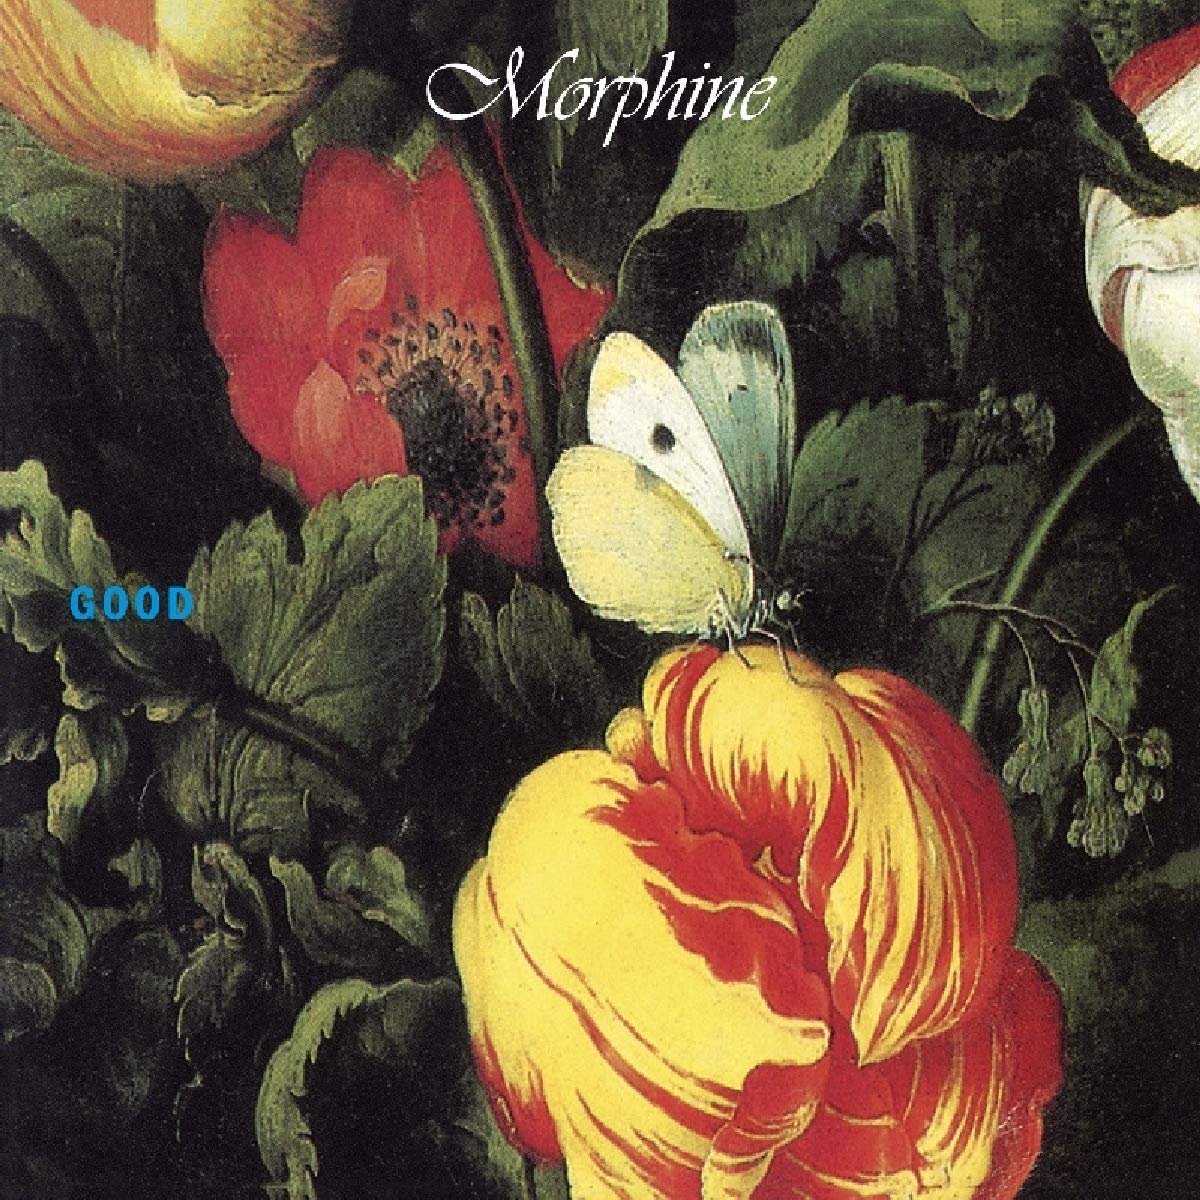 Morphine - Good (1992) [FLAC] Download